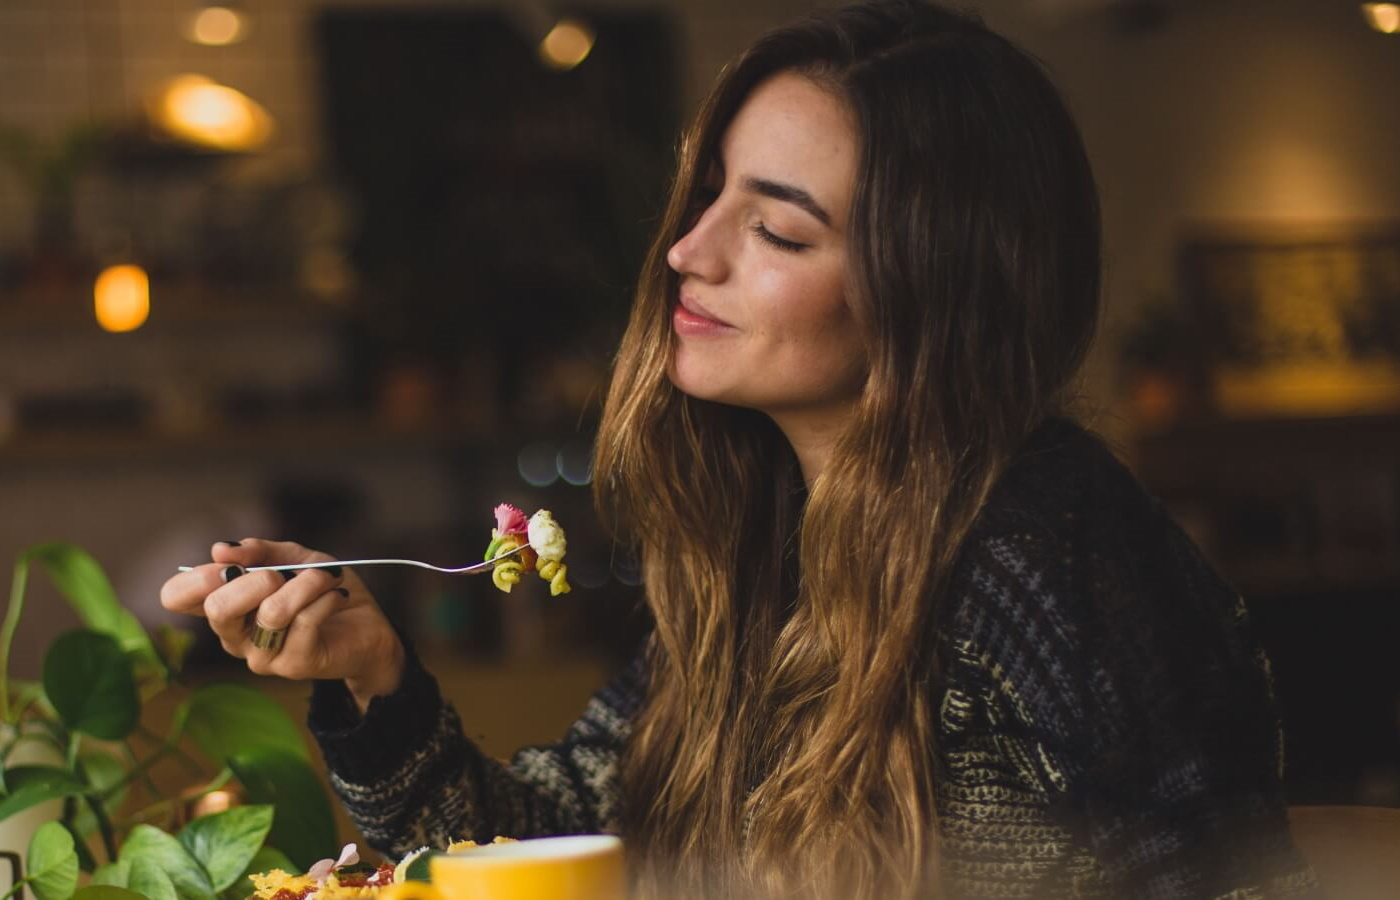 BECOME A MINDFUL AND MORE INTUITIVE EATER